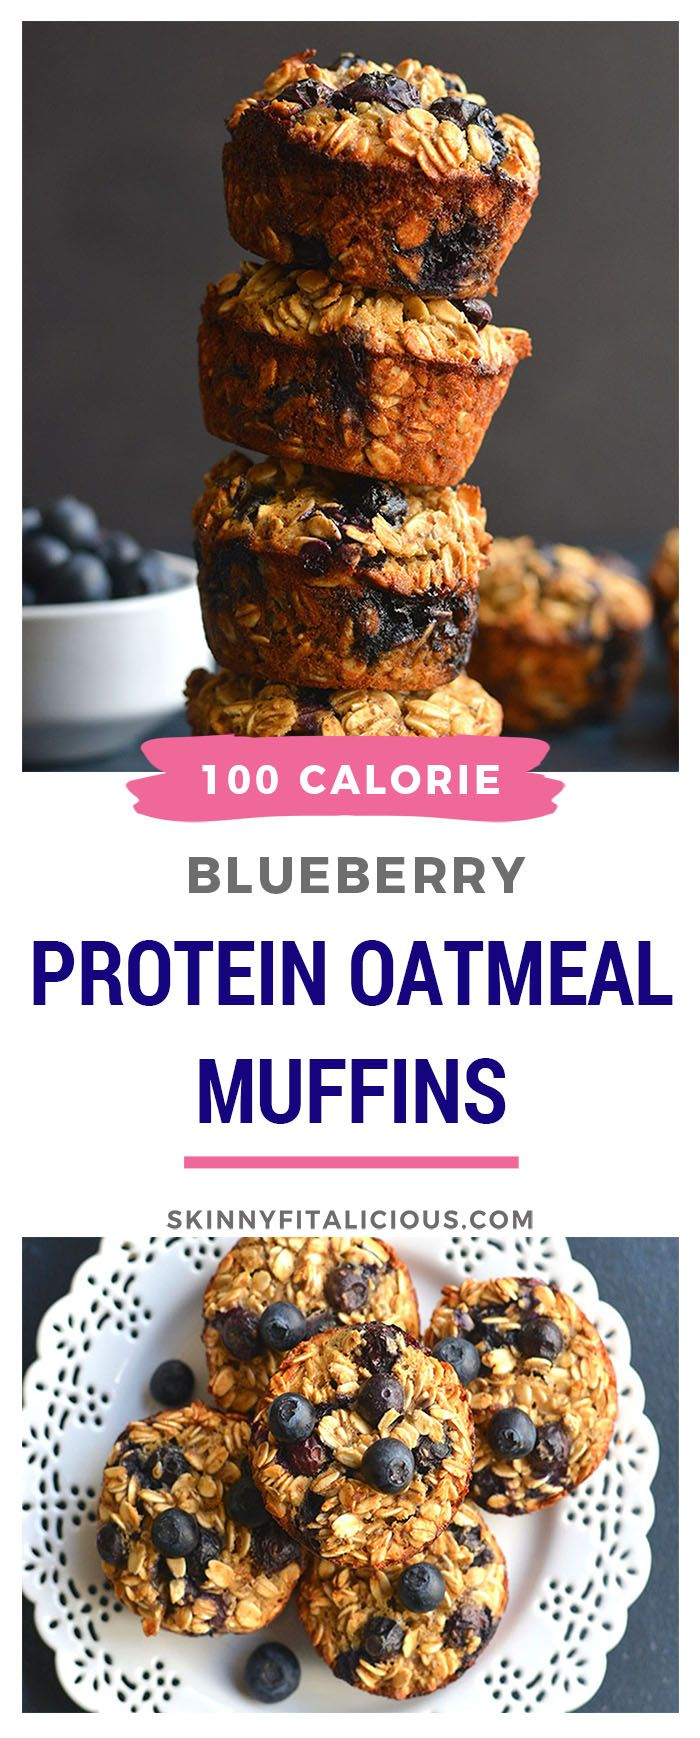 Blueberry Protein Oatmeal Muffins! These easy make ahead muffins are perfect for meal prepping a healthy breakfast or snack. Higher in protein to balance the carbs, these 97 calorie muffins are a better choice. Gluten Free + Low Calorie